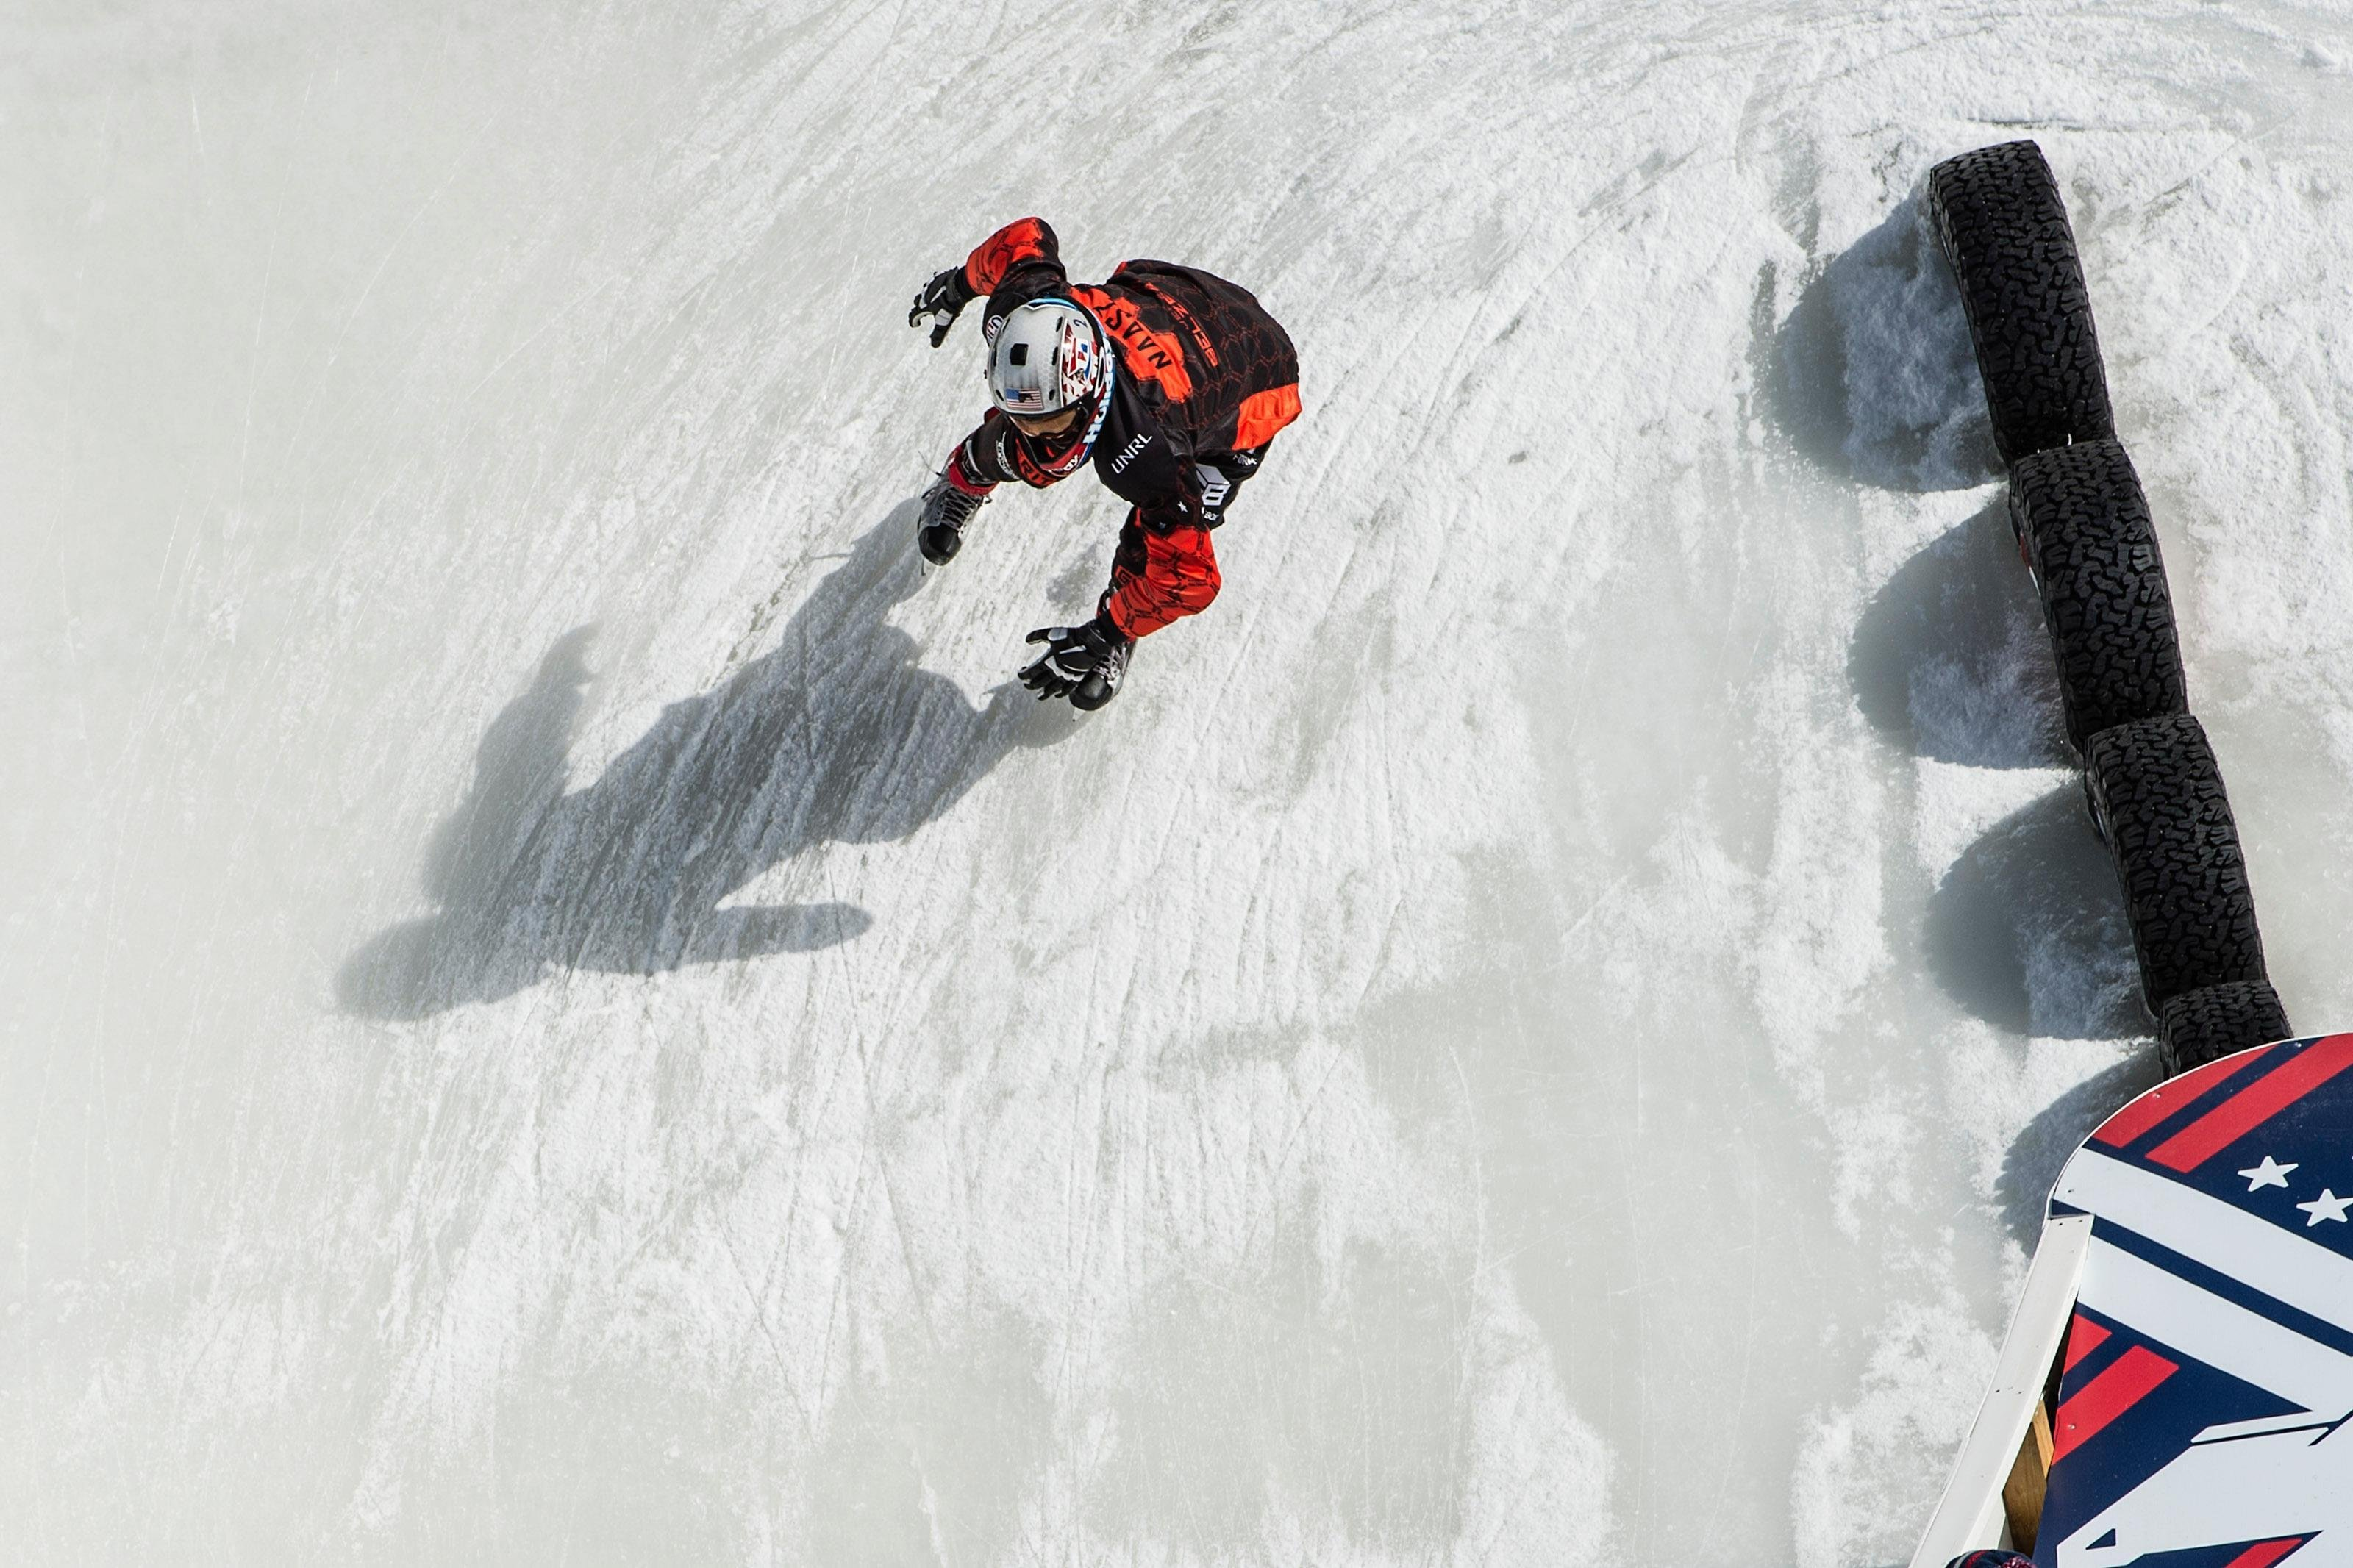 Cameron Naasz Looks to Unseat Scott Croxall as Red Bull Crashed Ice Champion